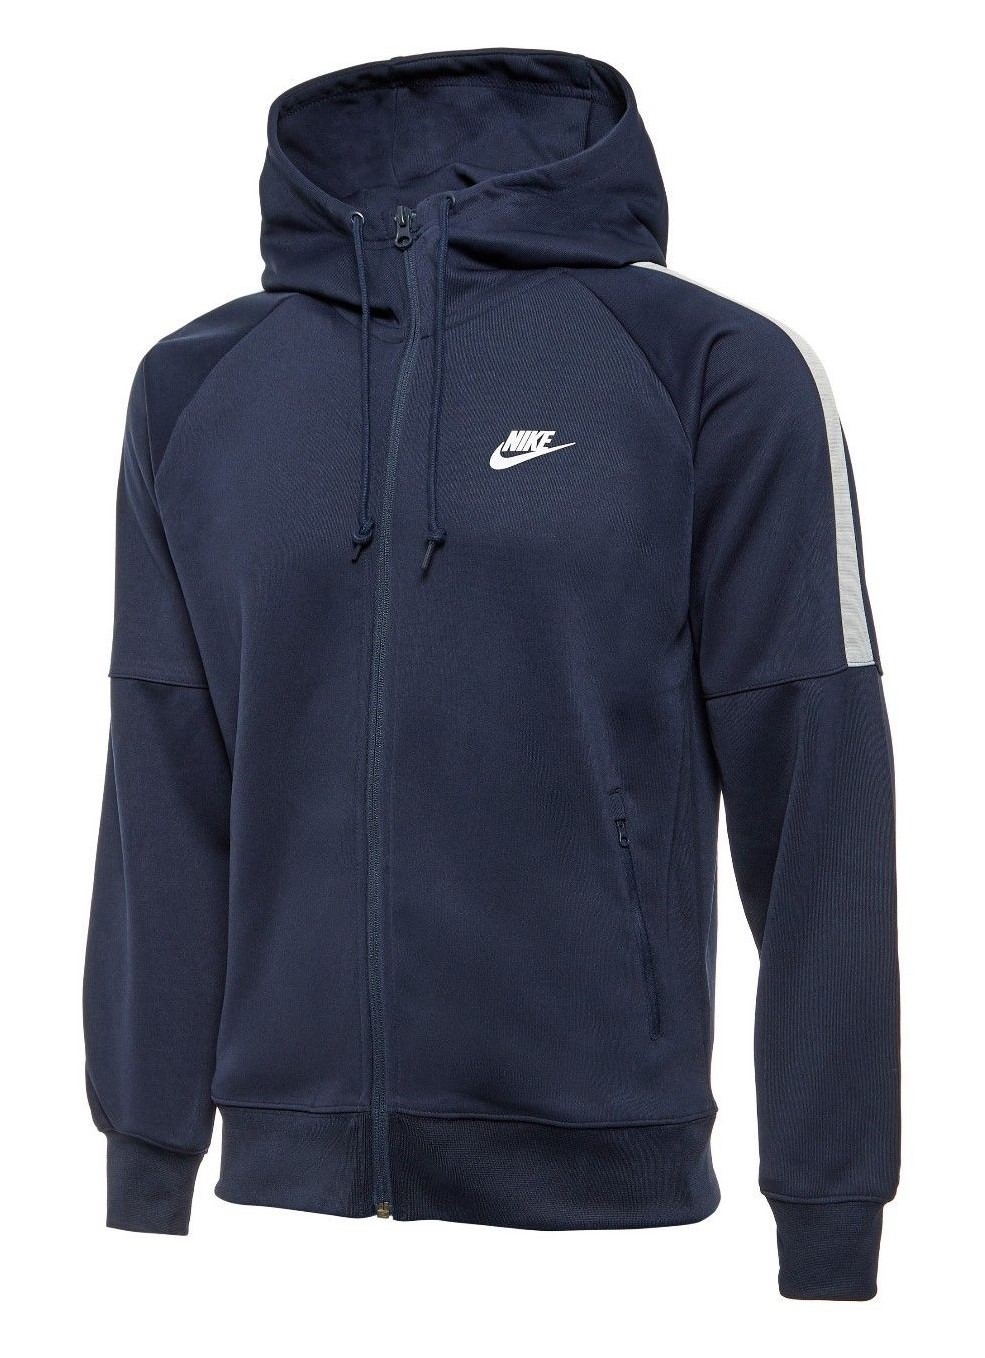 e2edd0896 NIKE NAVY TRIBUTE FULL ZIP HOODIE MENS - UGO Sports